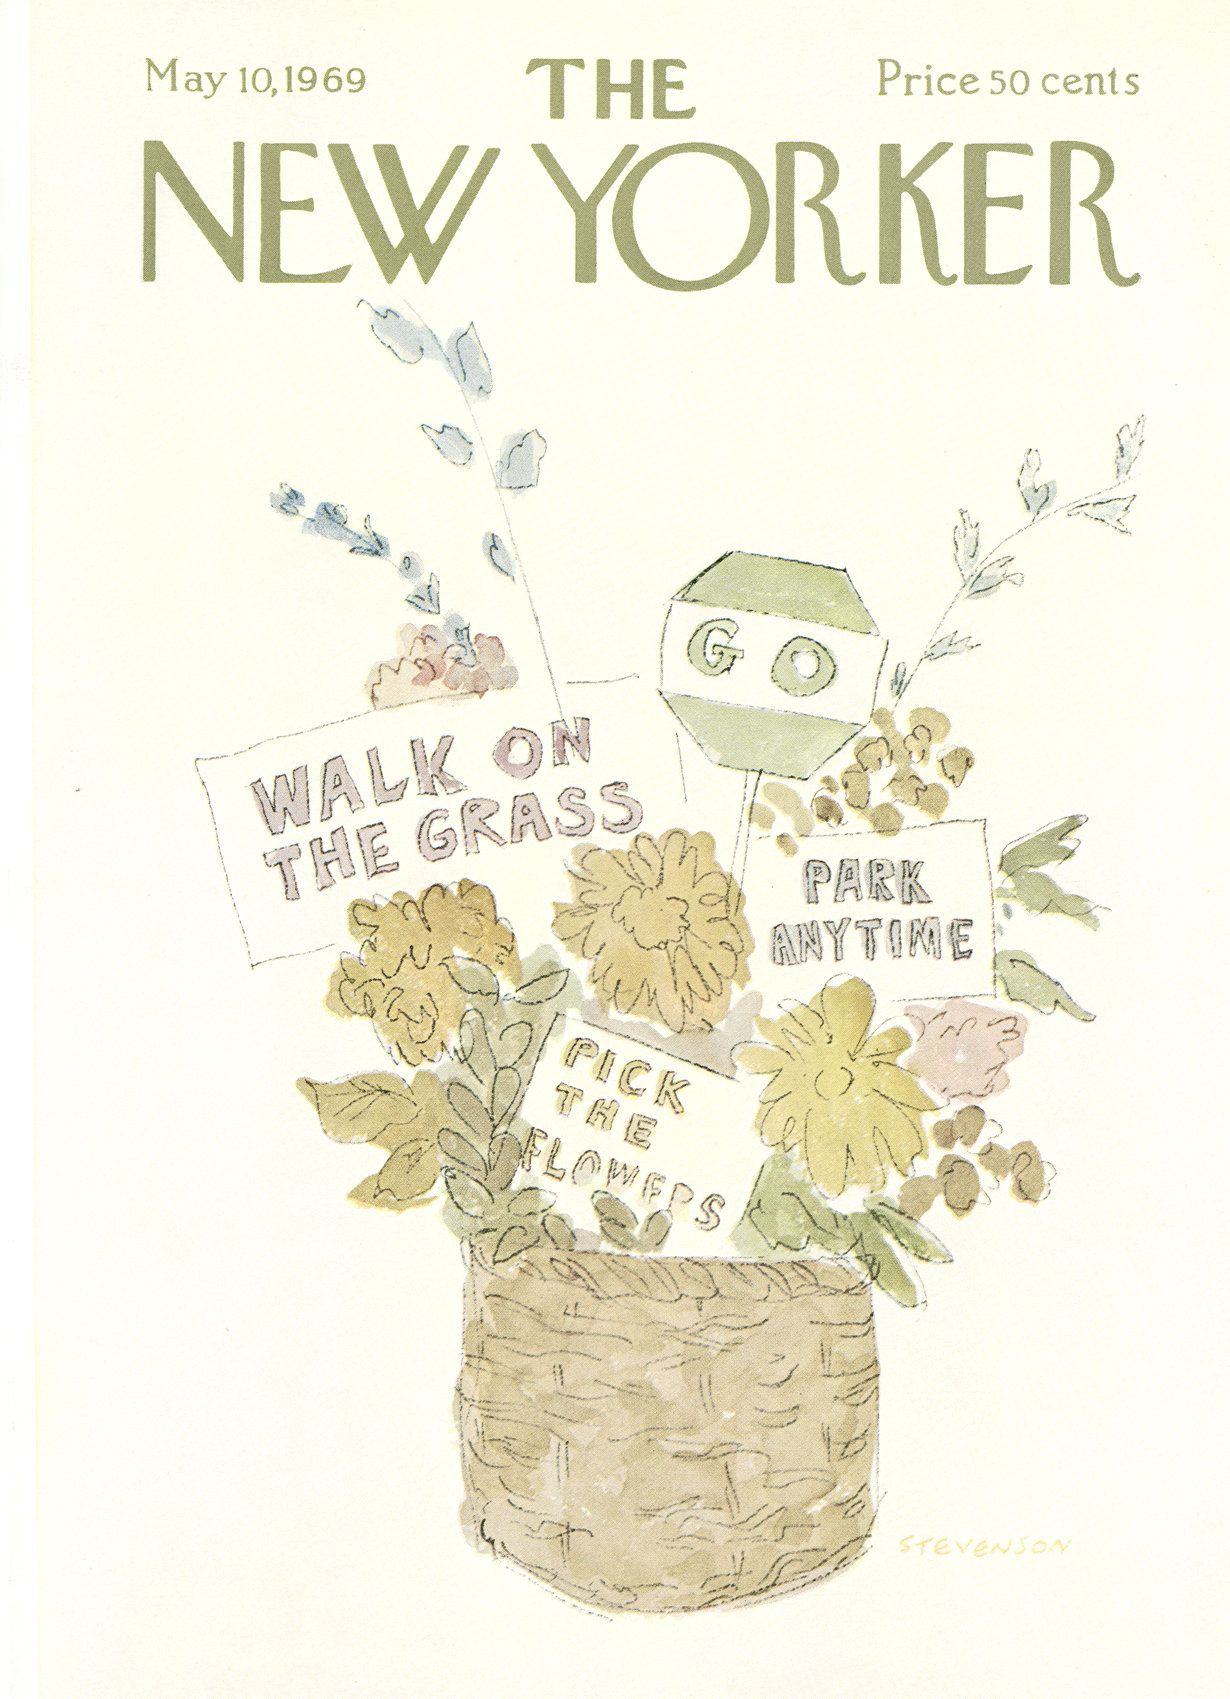 The New Yorker - Saturday, May 10, 1969 - Issue # 2308 - Vol. 45 - N° 12 - Cover by : James Stevenson